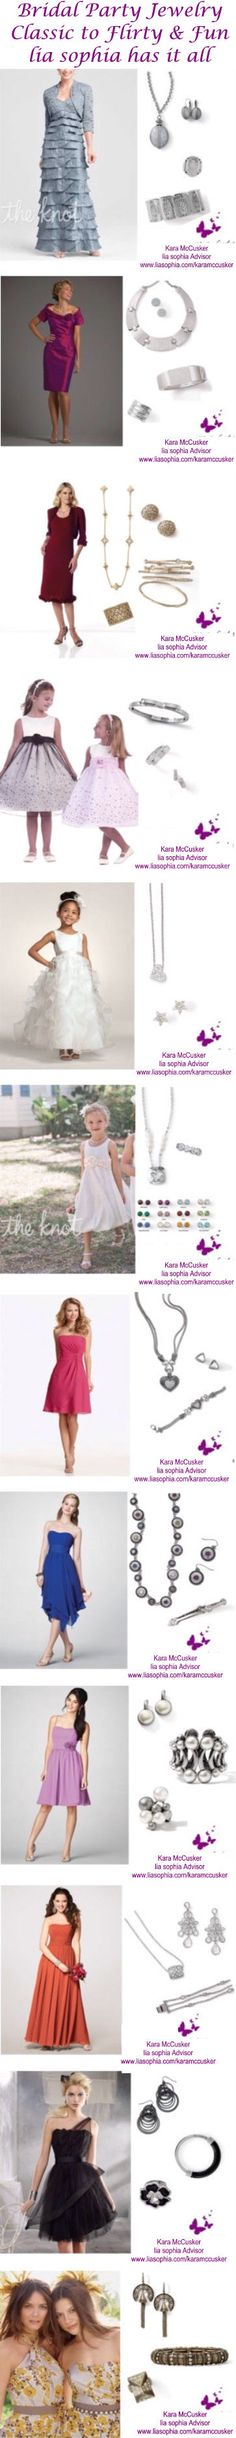 Need the perfect jewelry for your Maid of Honor, Bridesmaid, Flower girl or Mother of the Bride? Lia sophia has you covered! From simple and classic to fun and flirty...lia sophia has it all!!!